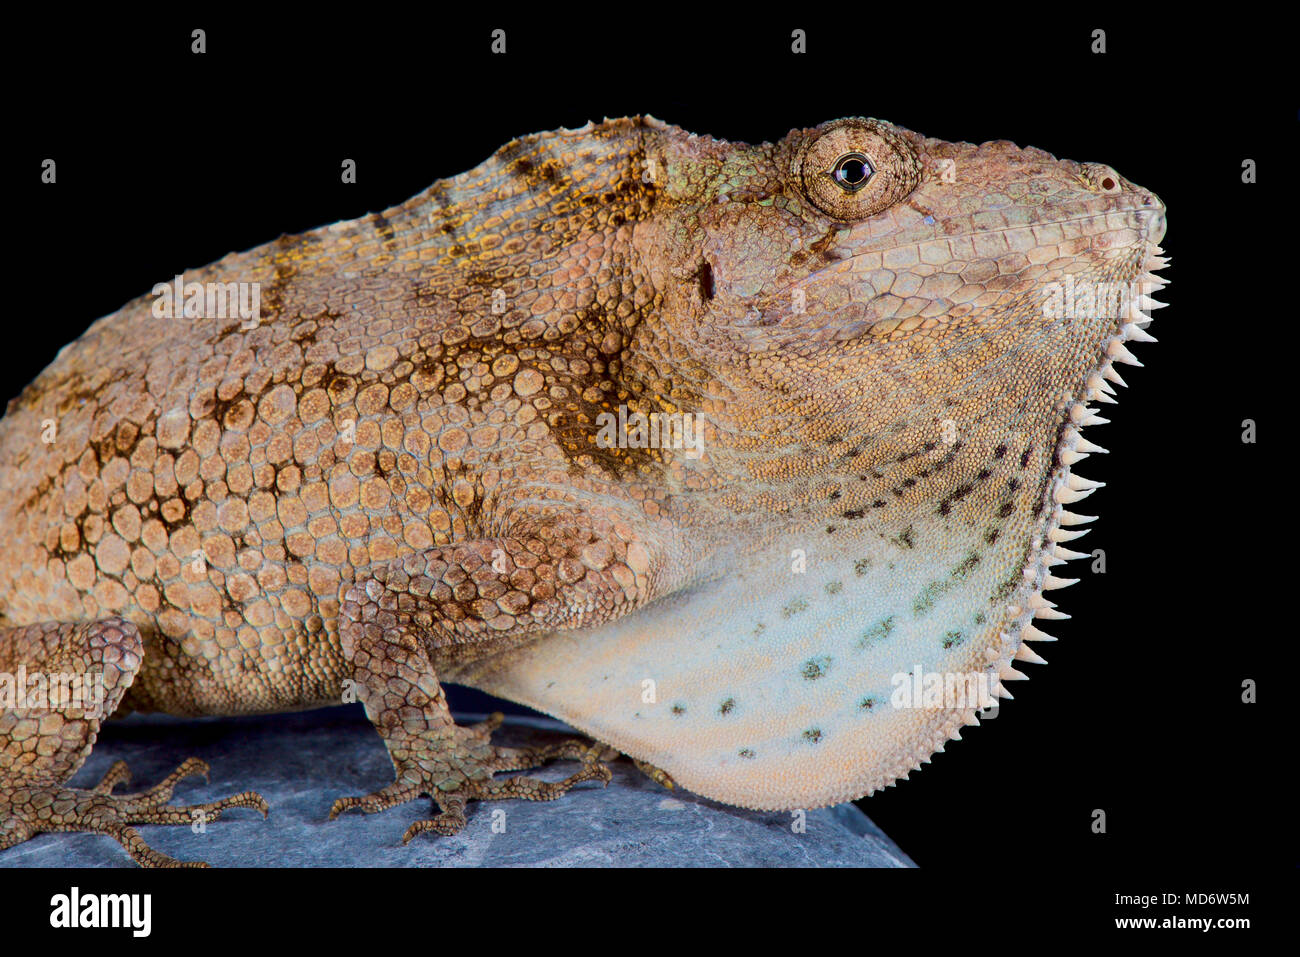 The Cuban giant bearded anole (Anolis barbatus) is a giant, cryptic anolis species endemic to Cuba. These are specialized snail eaters. - Stock Image